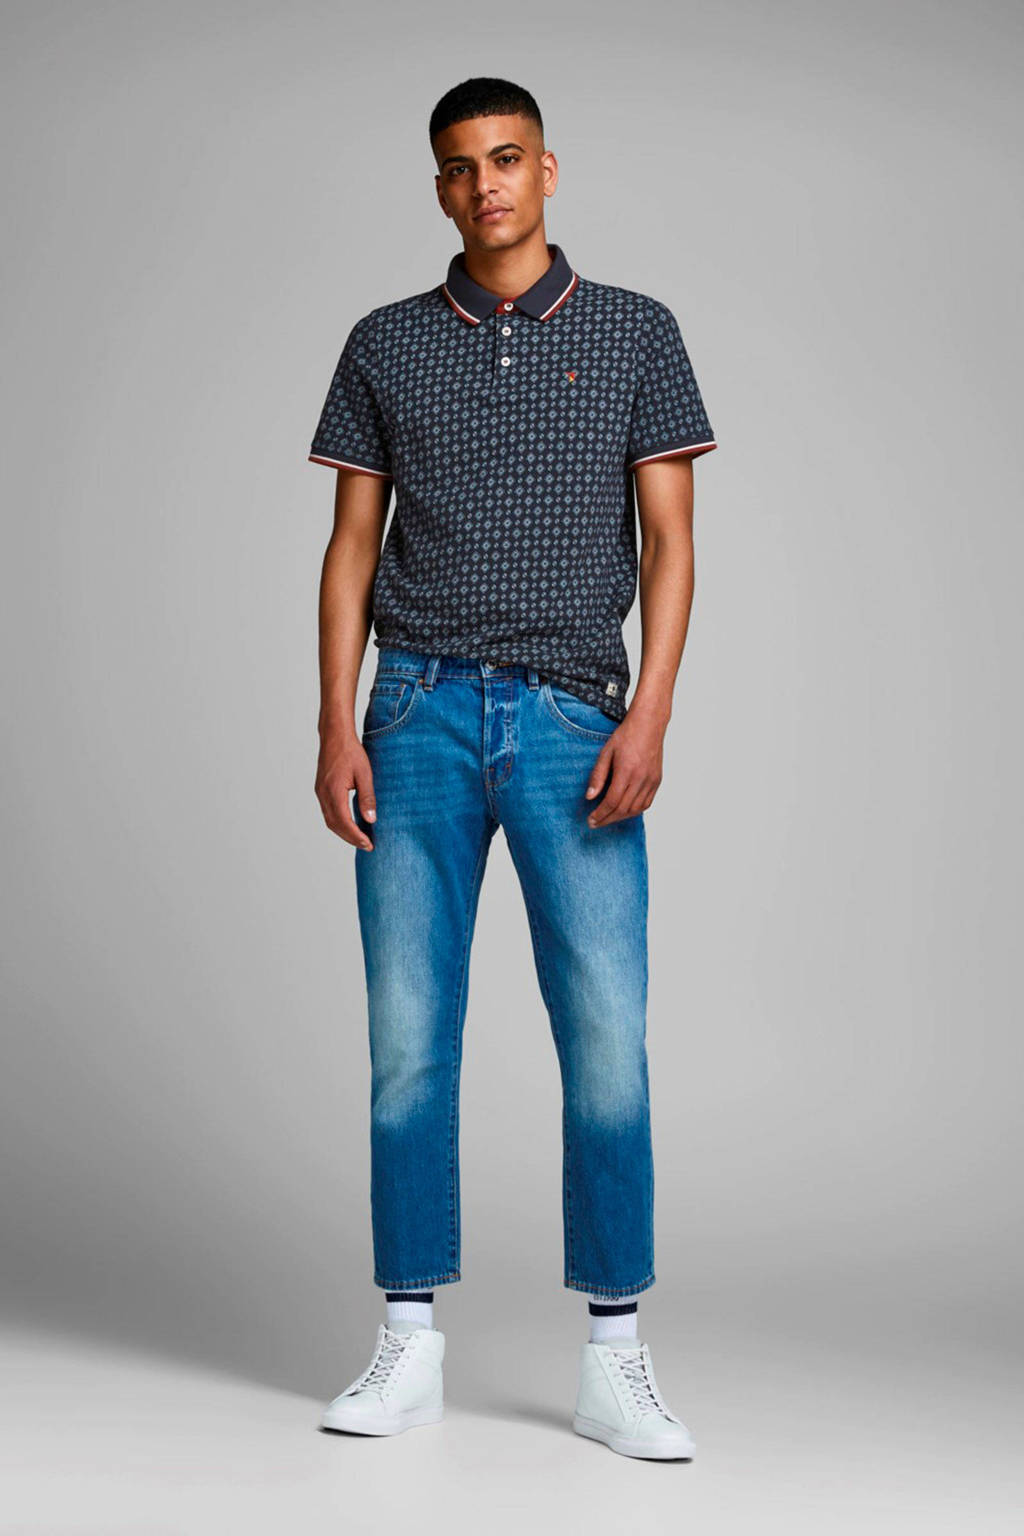 JACK & JONES PREMIUM slim fit polo met all over print marine/rood/ecru, Marine/rood/ecru